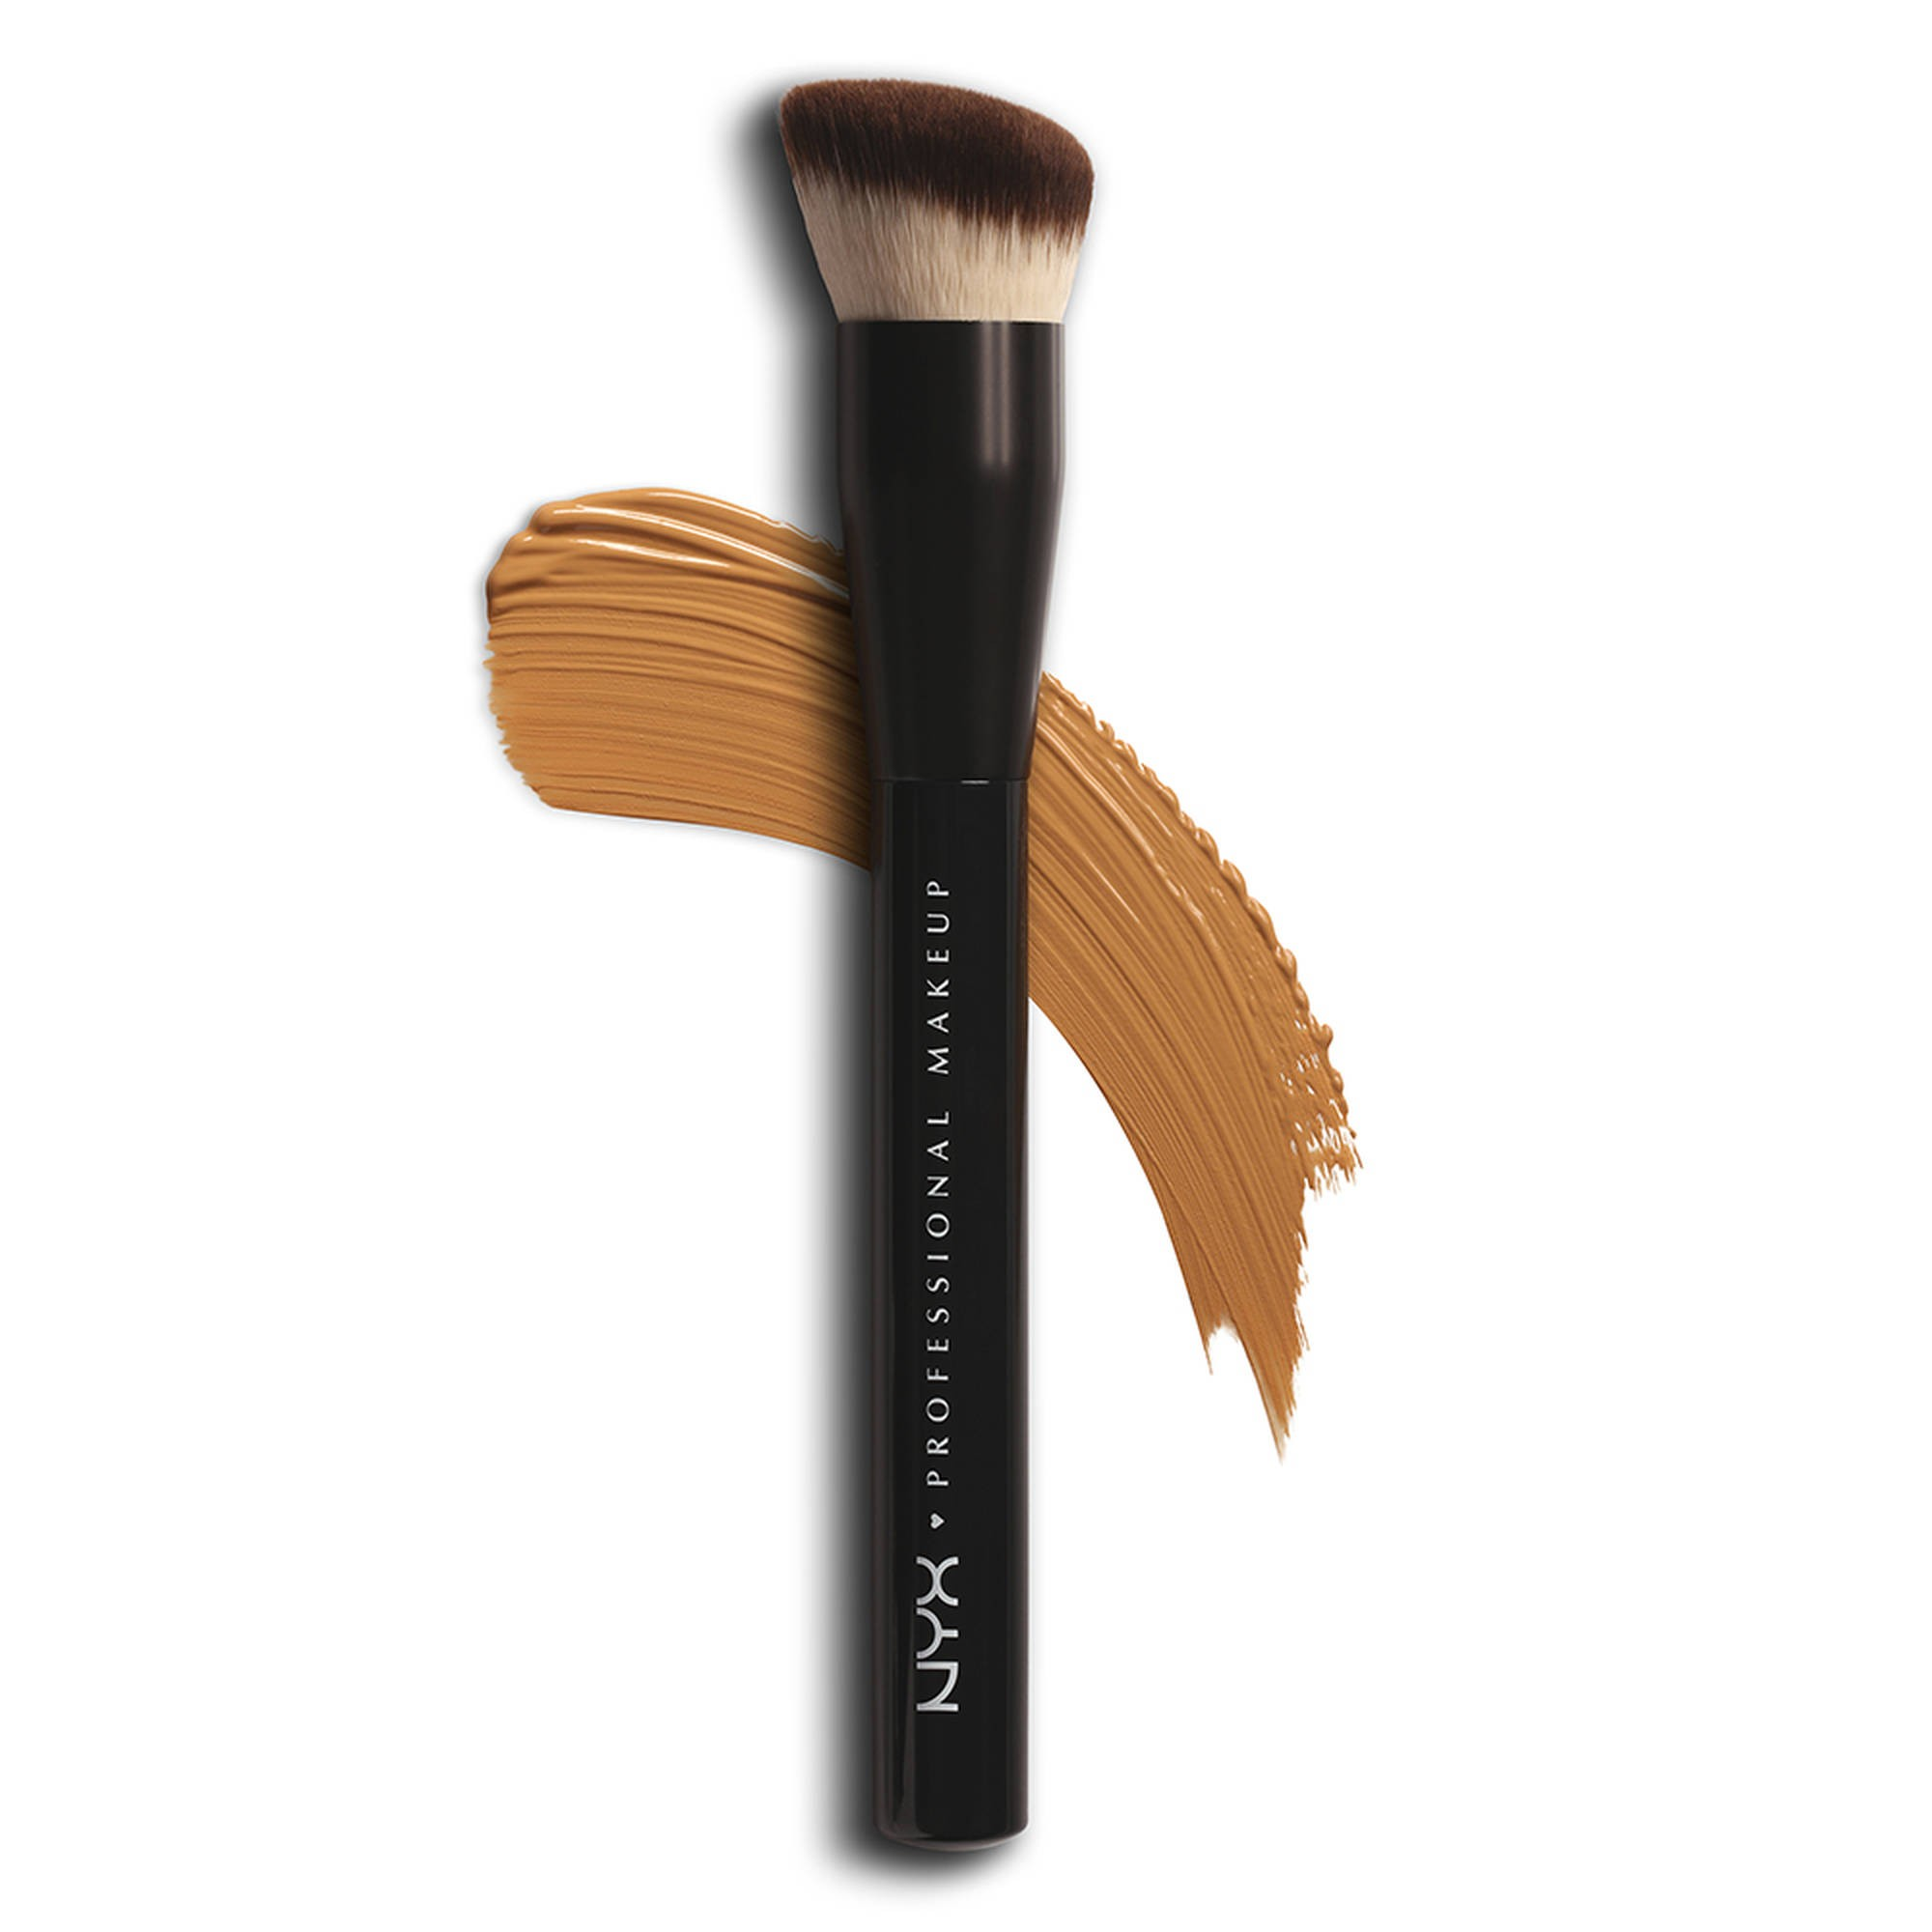 Foundation-Pinsel - Can't Stop Won't Stop Foundation Brush